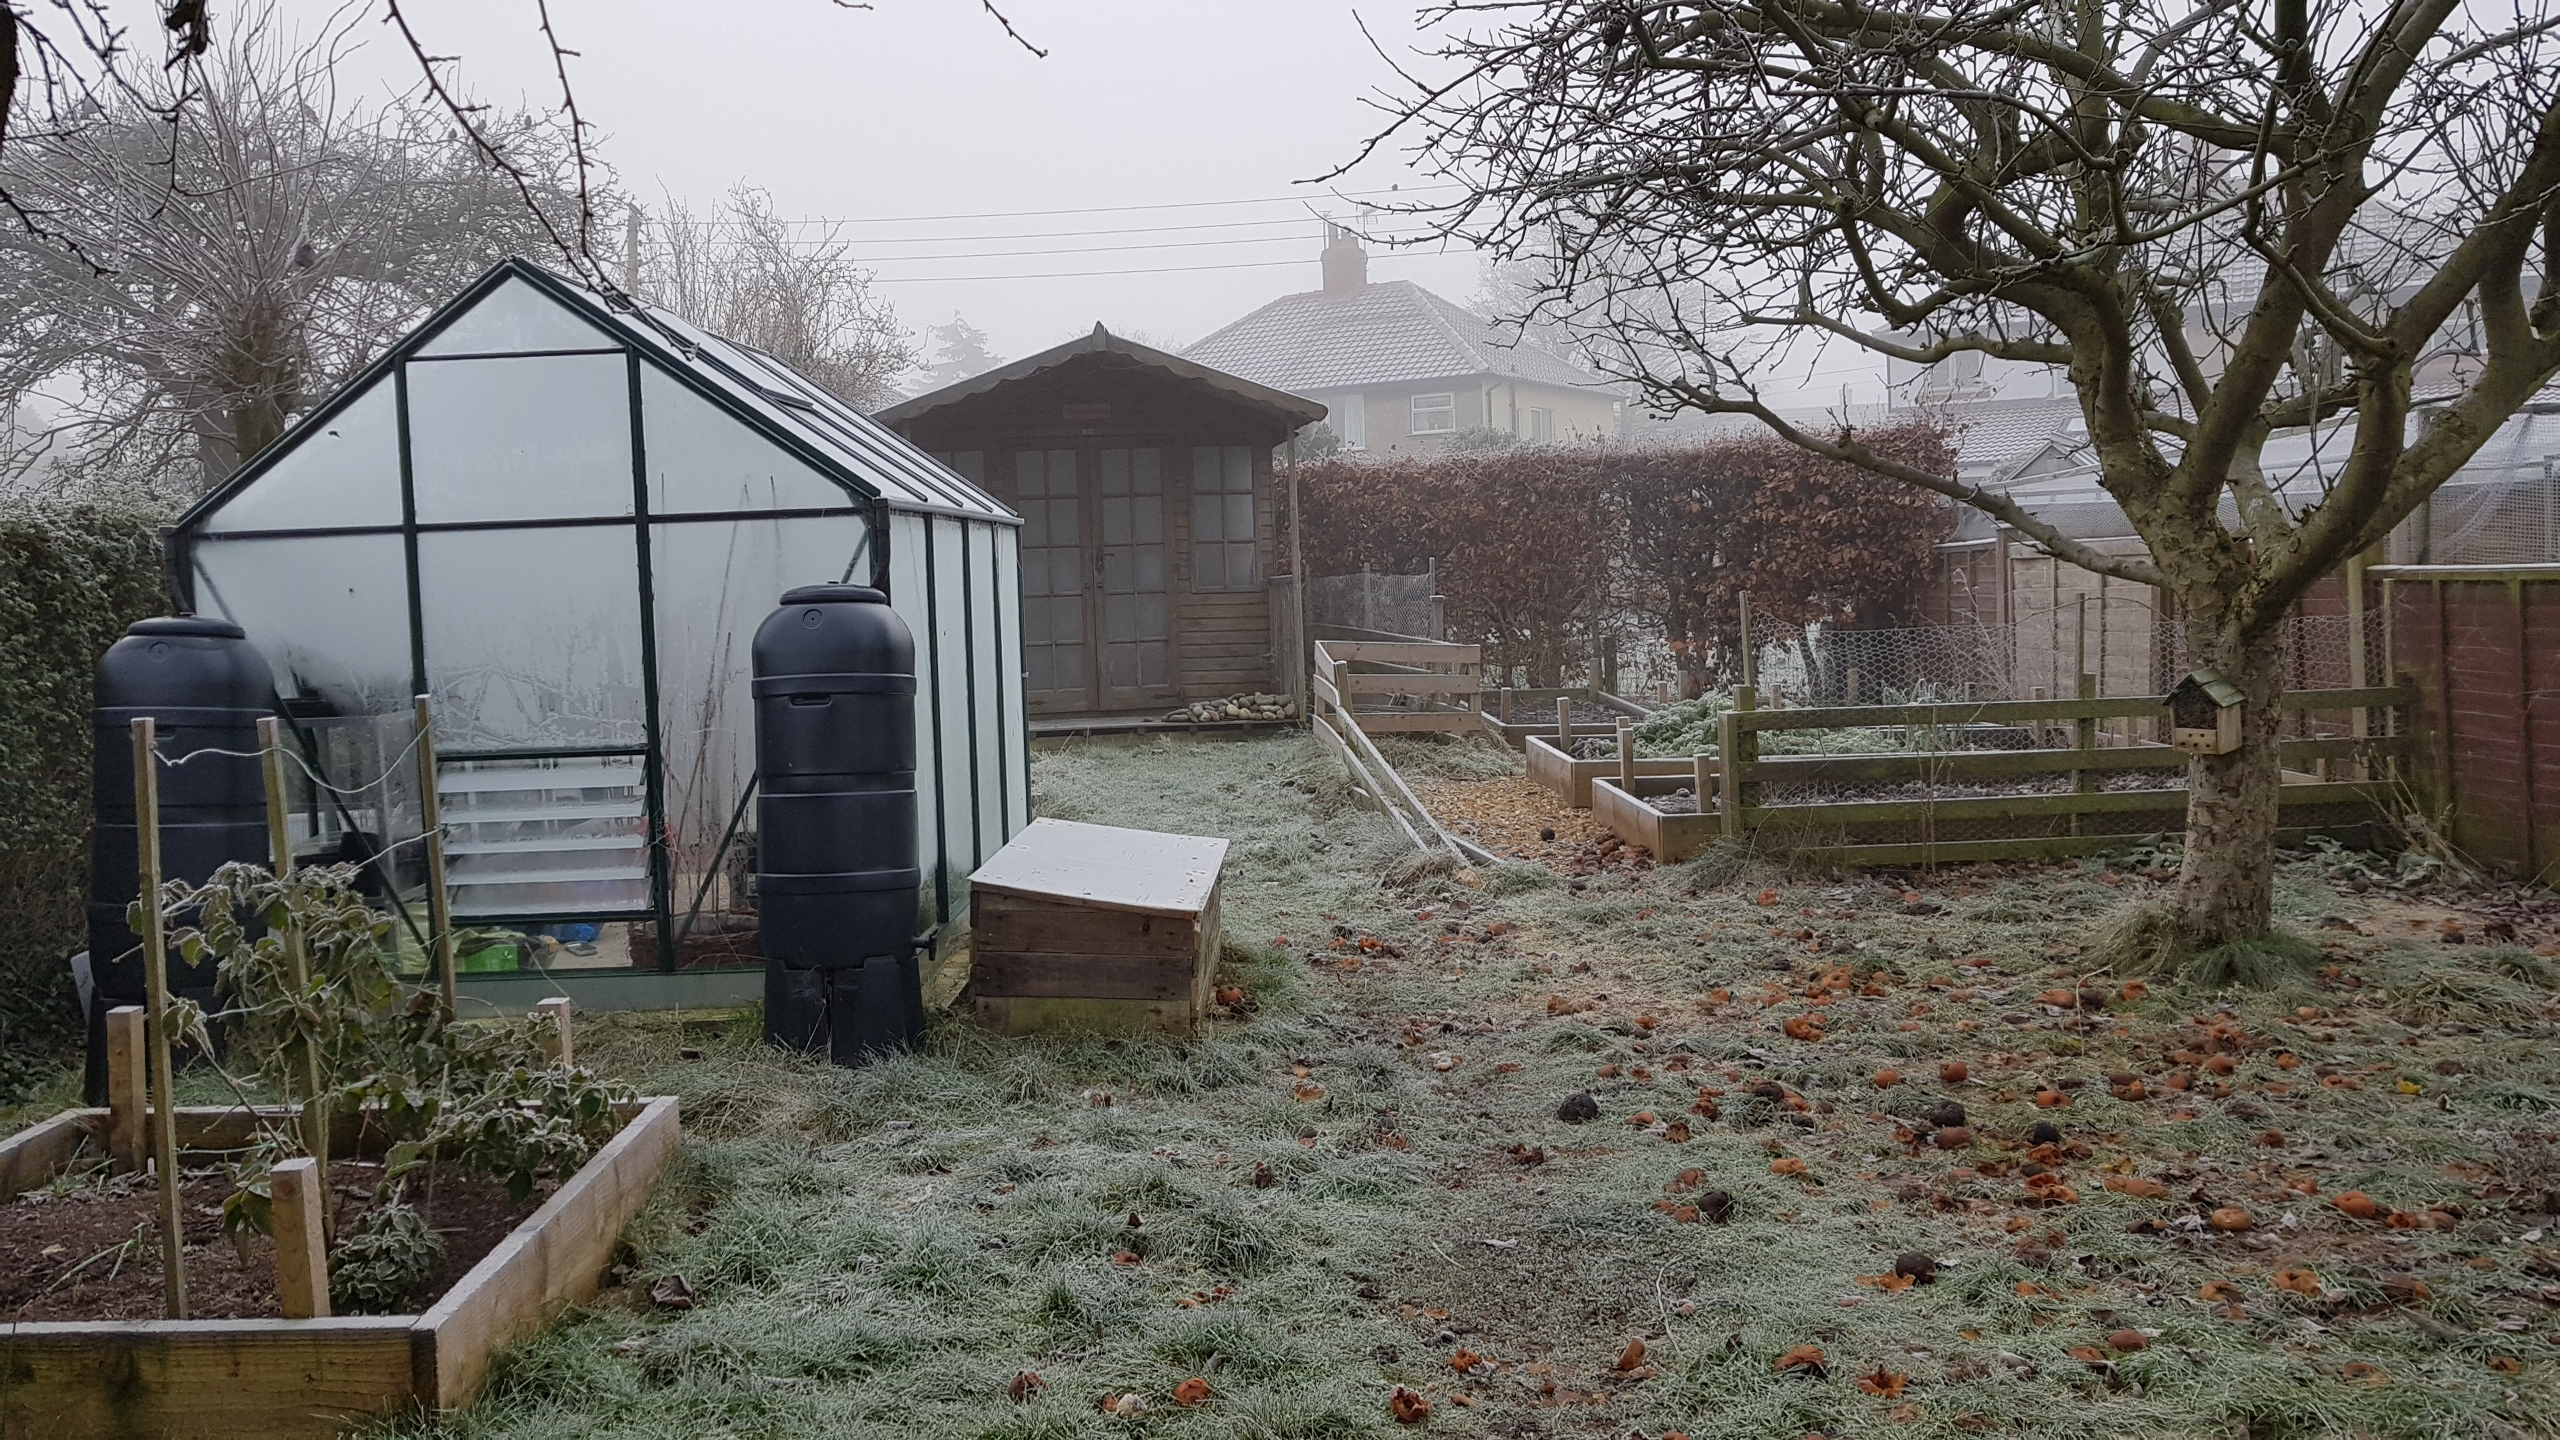 Garden with frost-covered greenhouse and frost on the grass